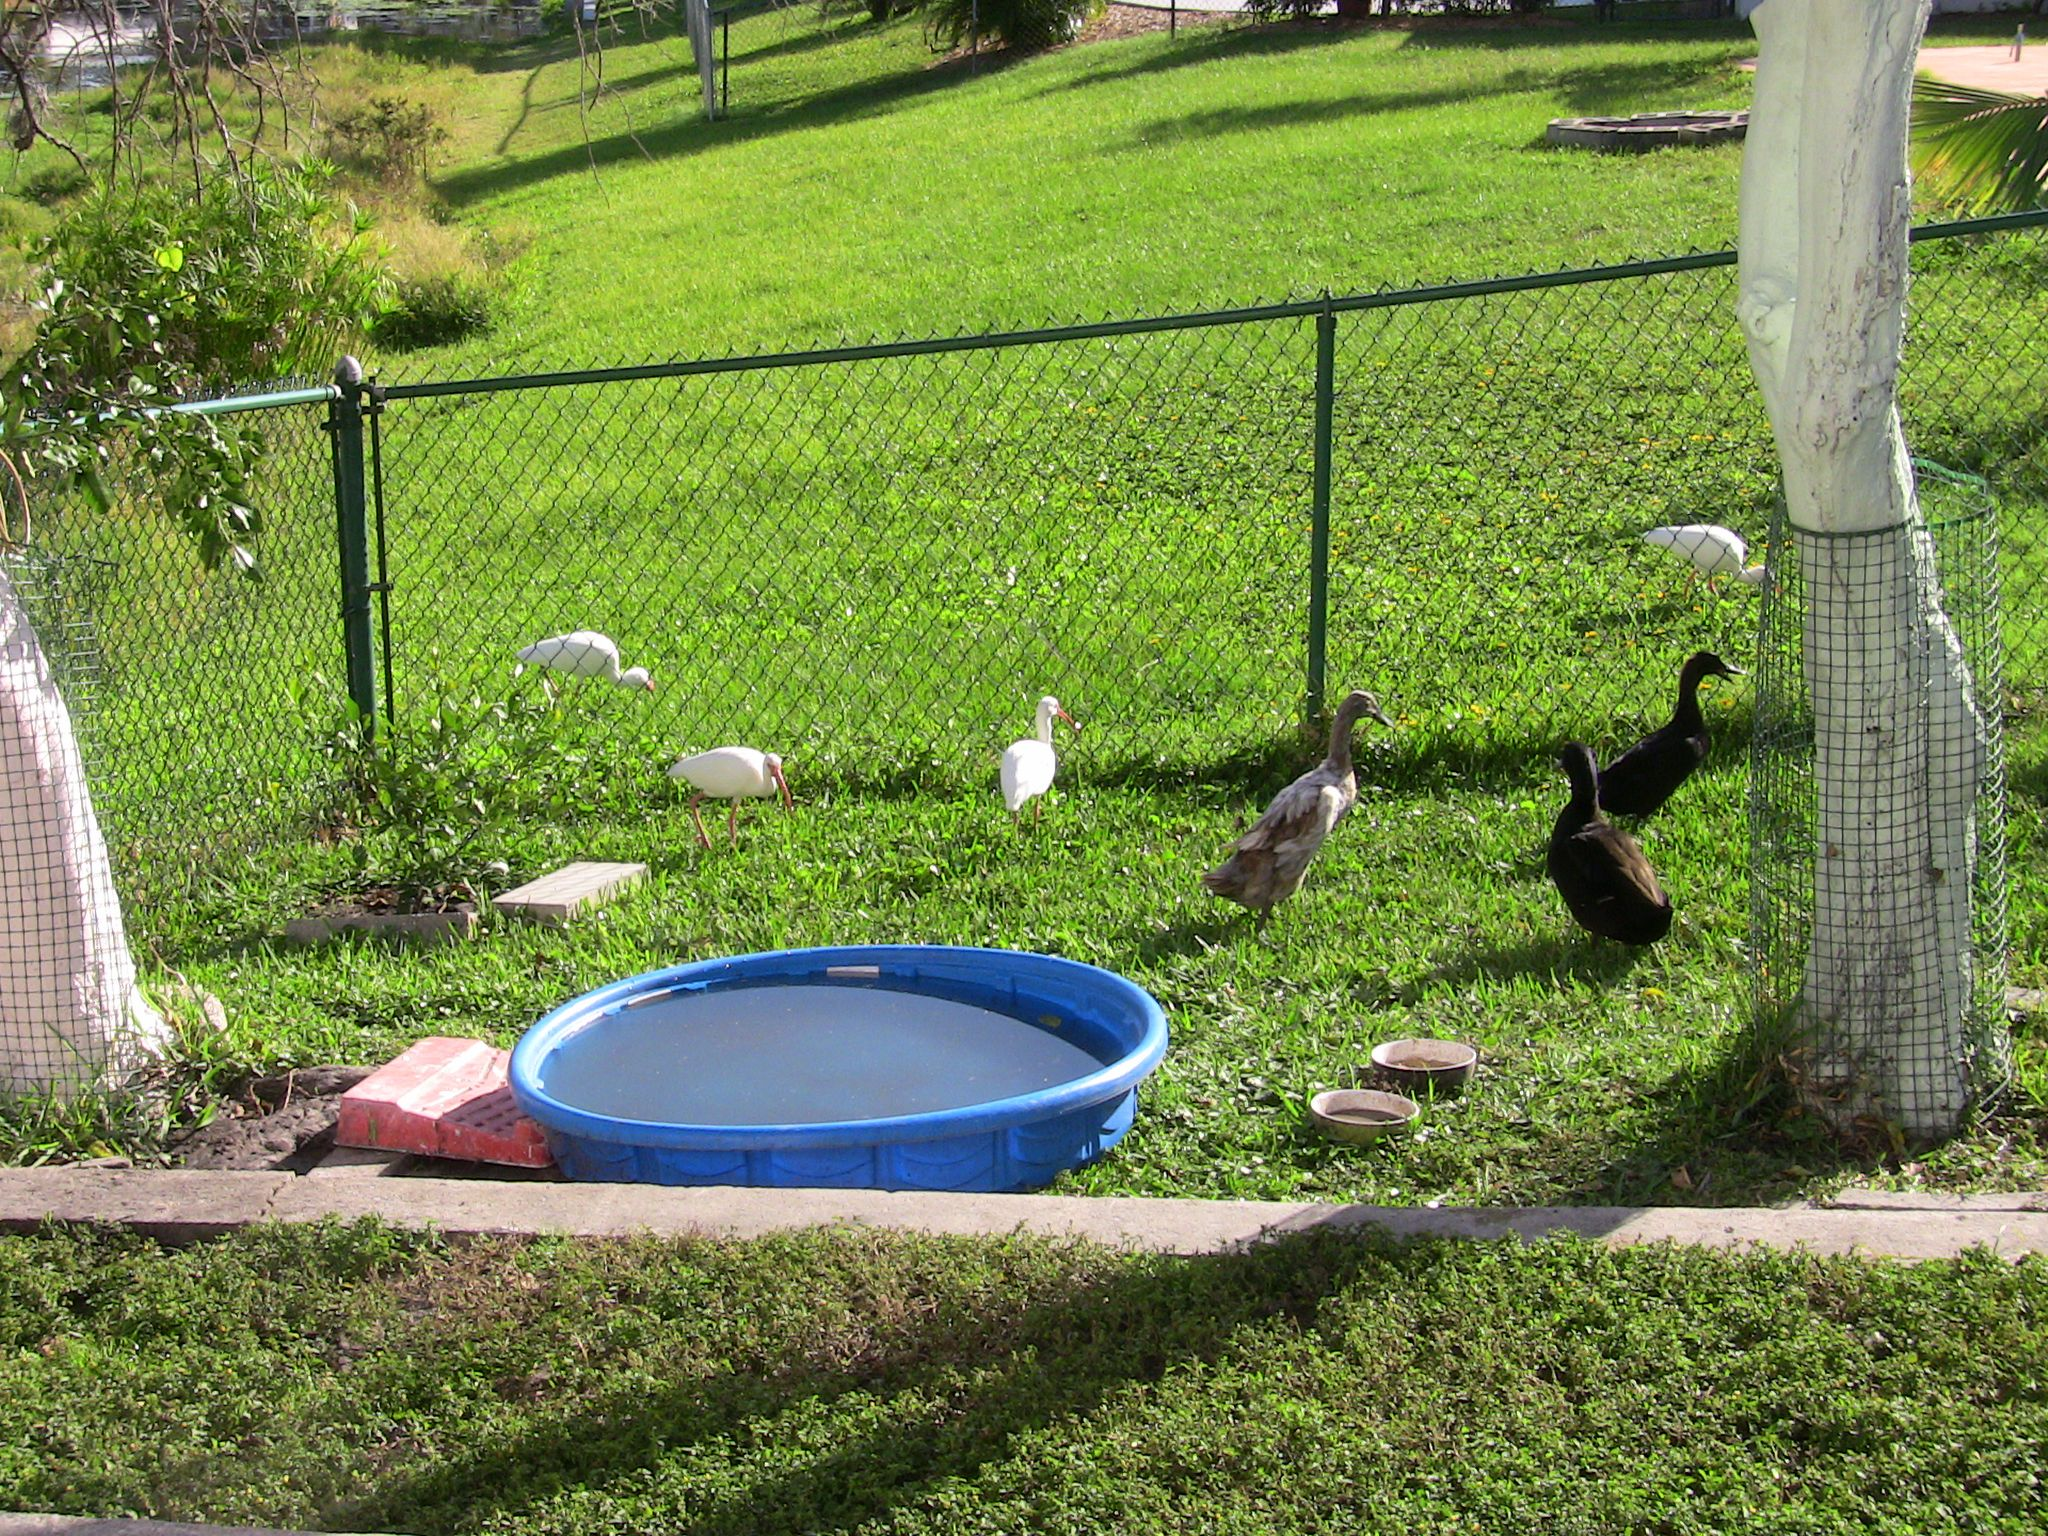 Diy Backyard Duck Pond : duck pond, duck kiddie pond, duck play pool, duck water bin